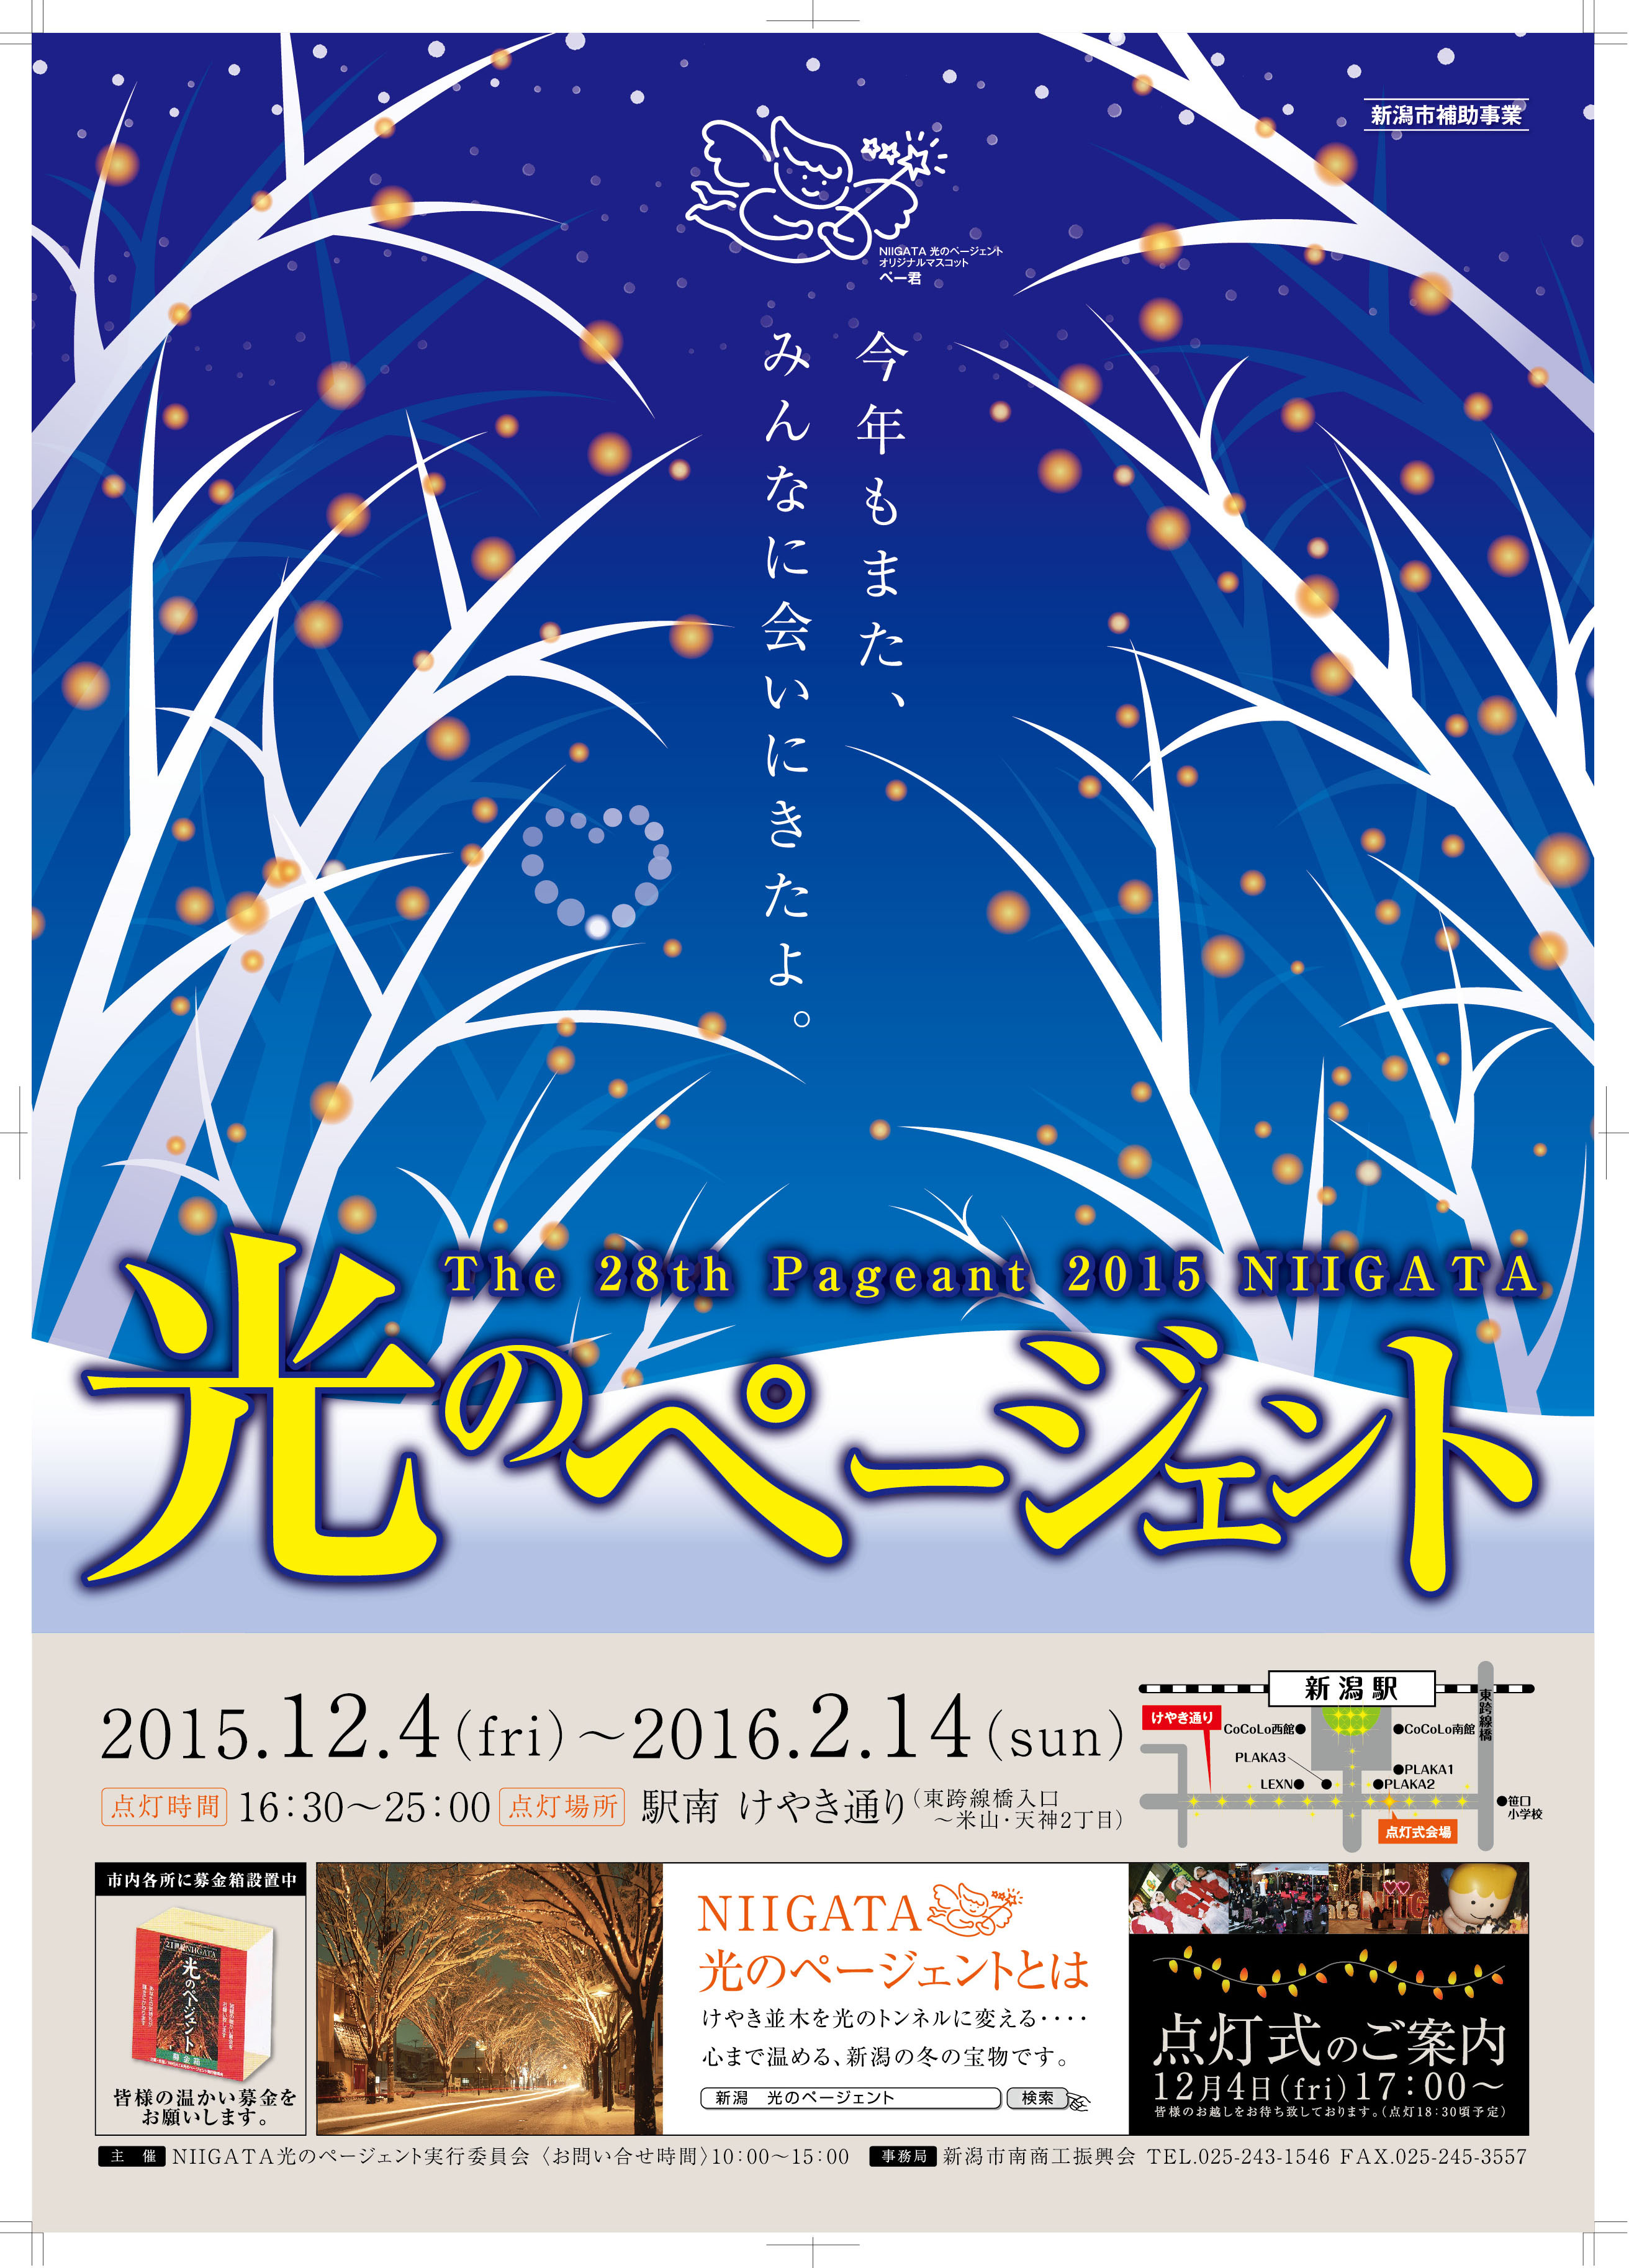 The 28th Pageant 2015 NIIGATA 光のページェントご案内